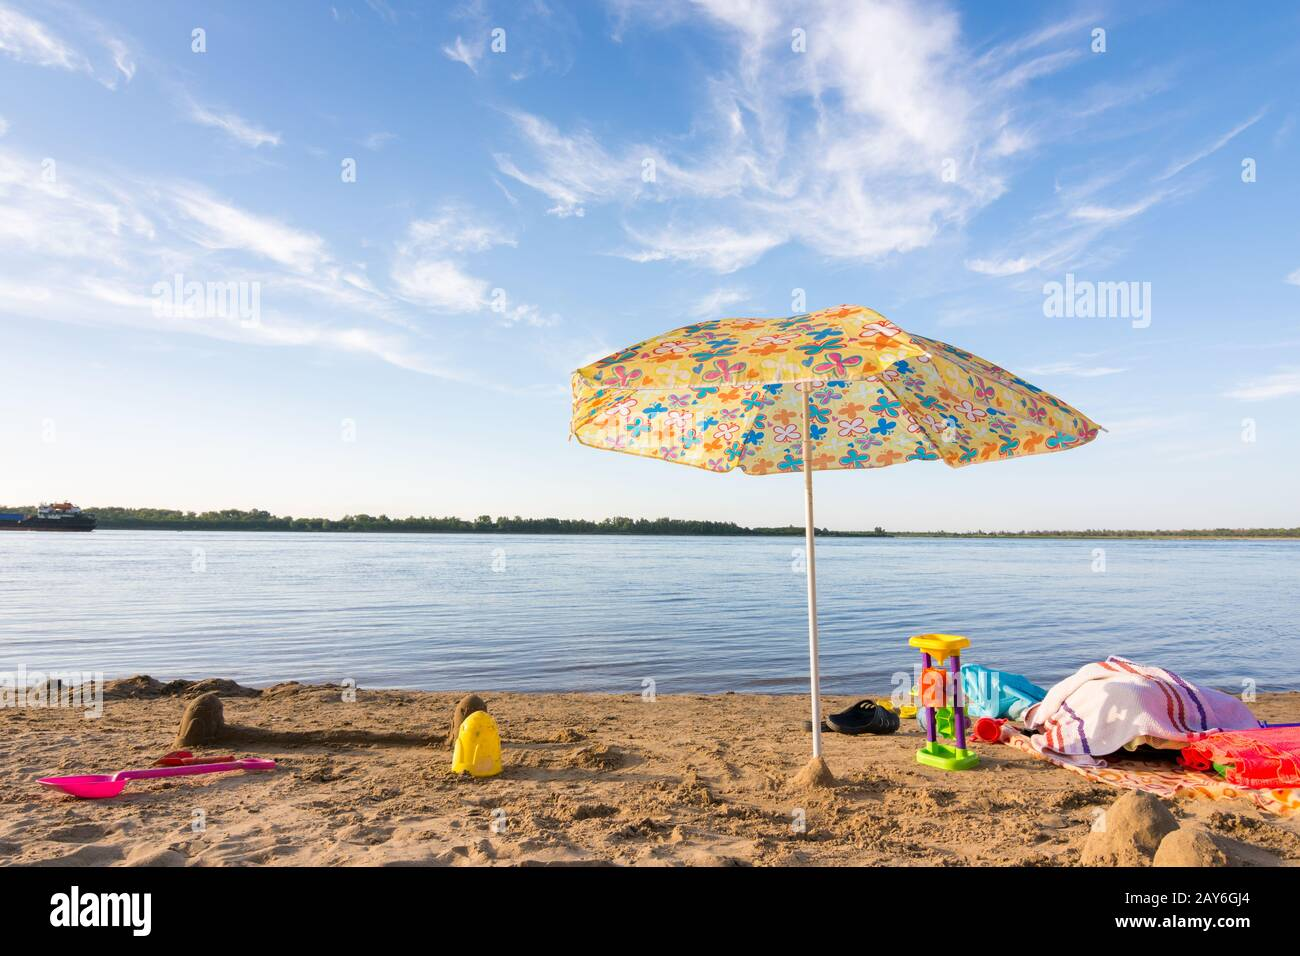 Parasol on the river bank, under which the scattered items and toys Stock Photo